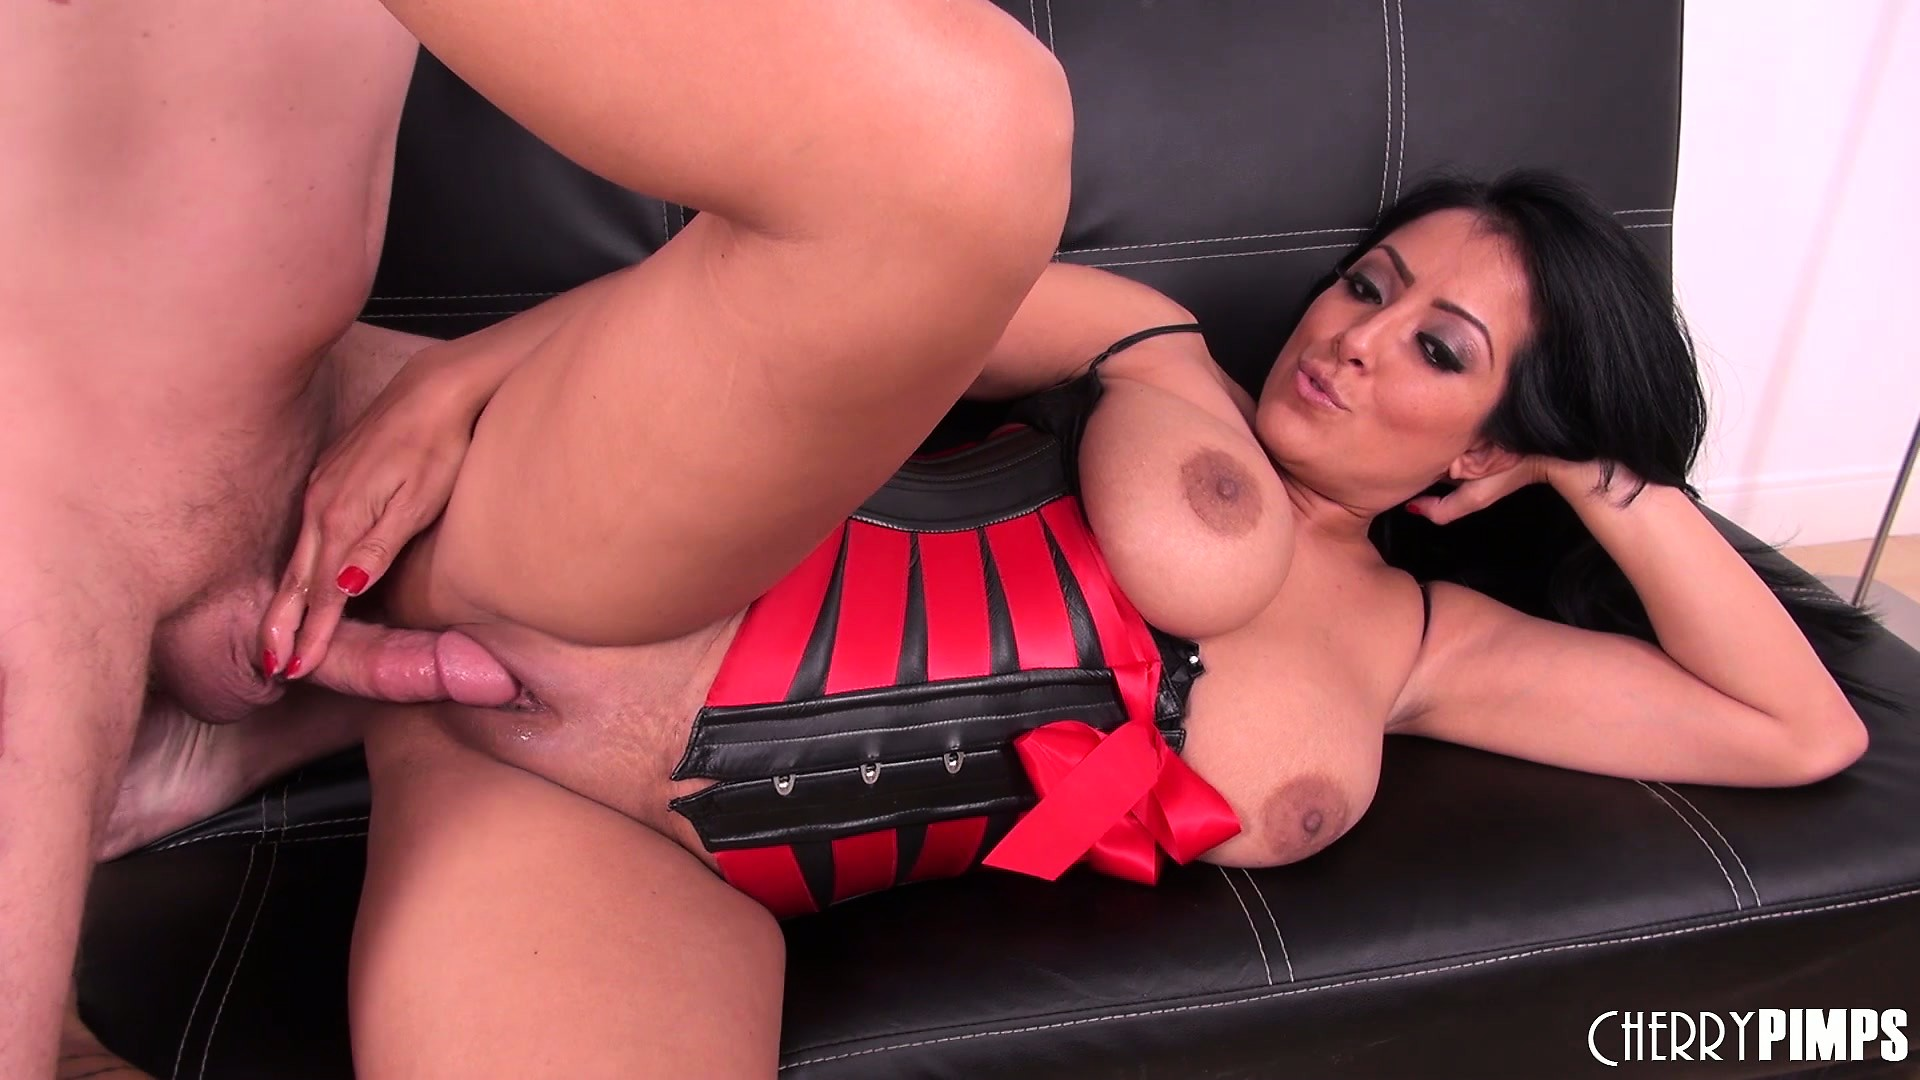 image Dual fuckdoll strap on threesome